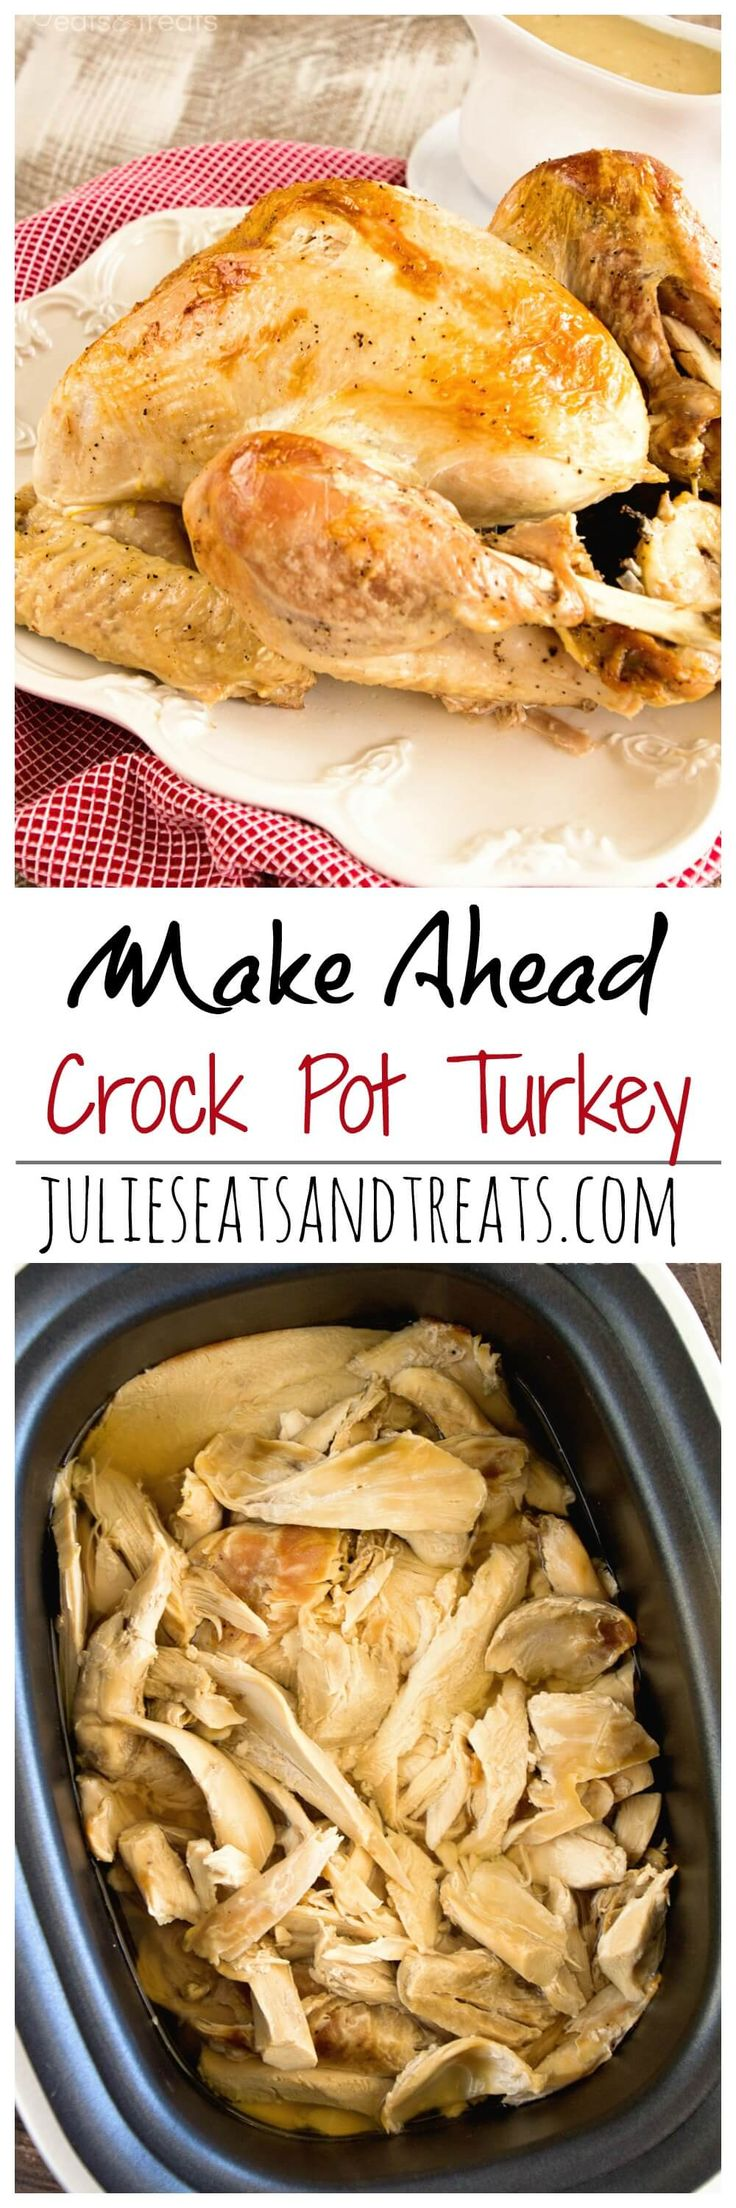 how to cook a moist turkey in oven